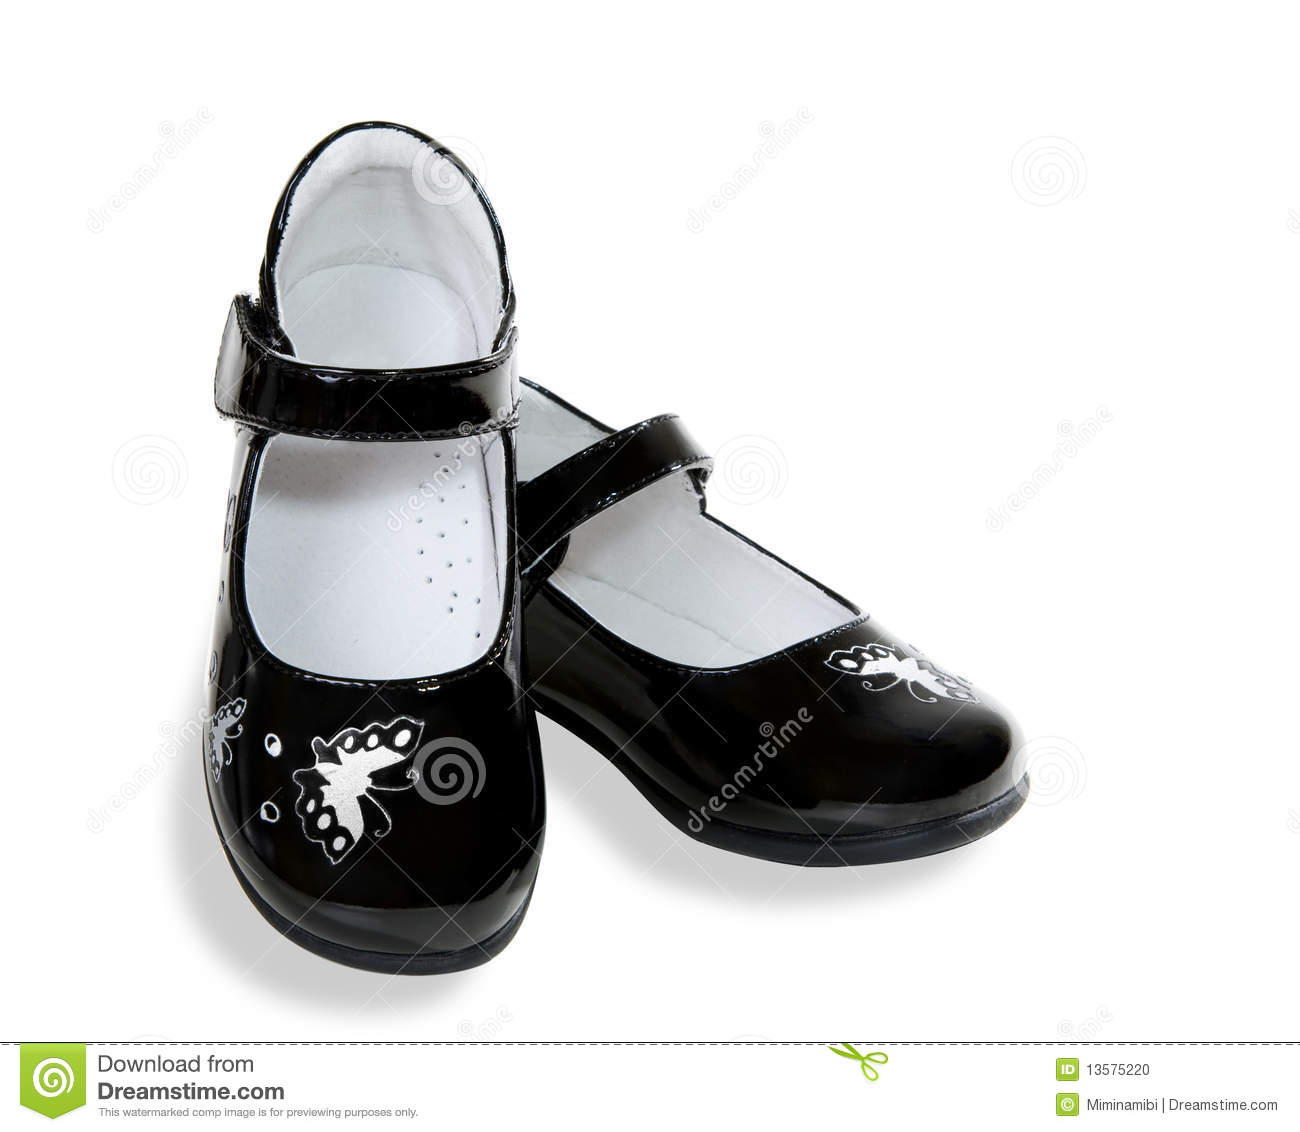 A pair of black baby shoe isolated on white